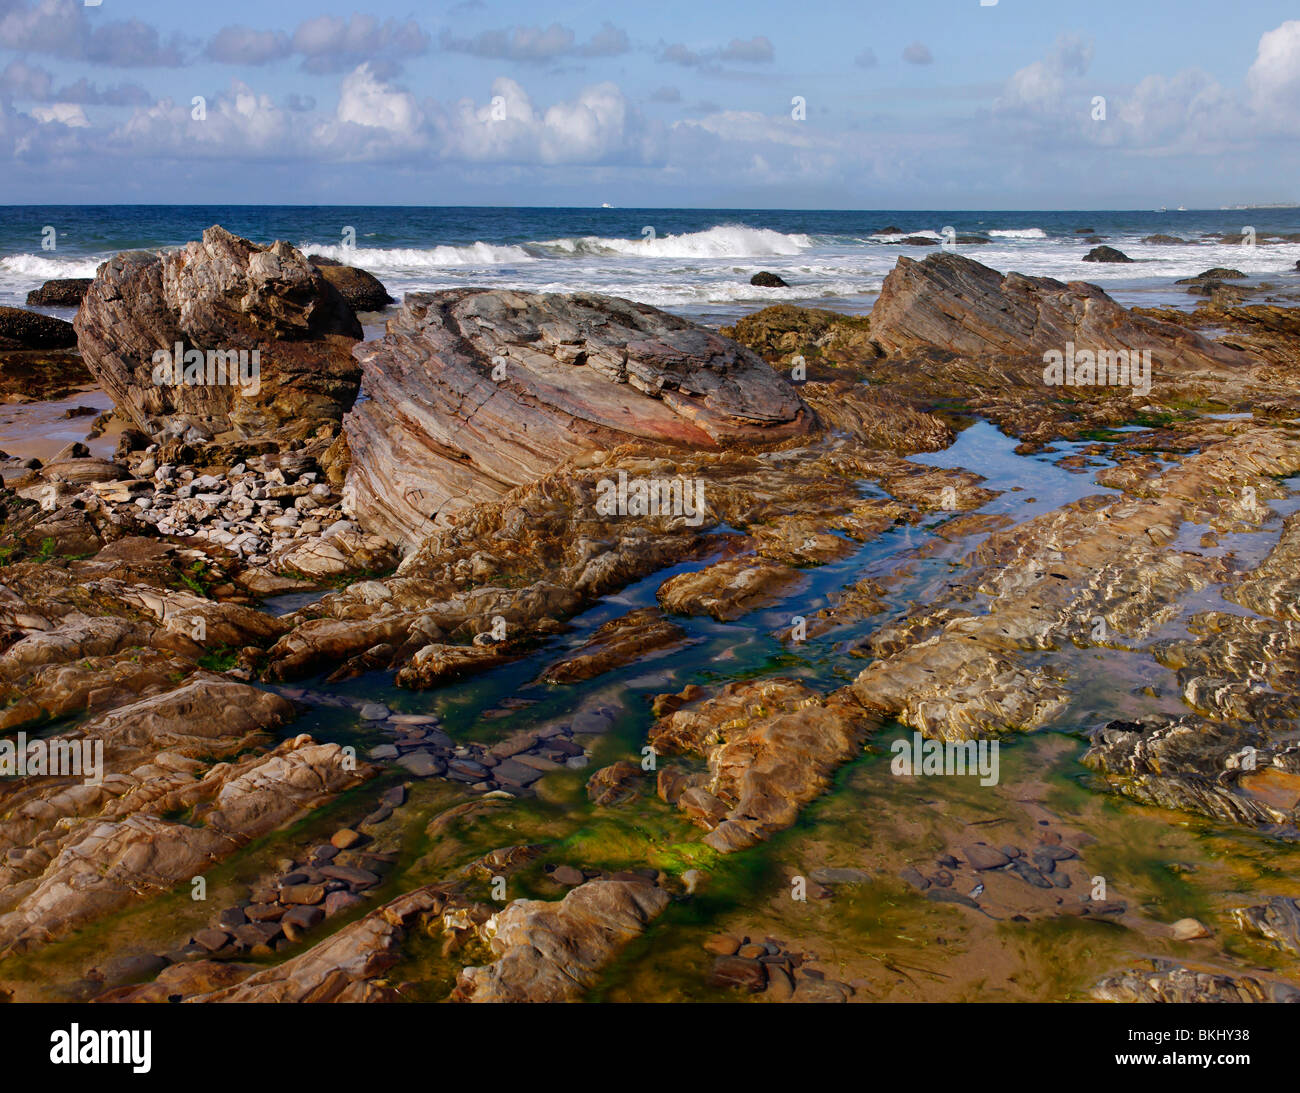 Tidepools in Crystal Cove State Park with colorful rocks formation. - Stock Image